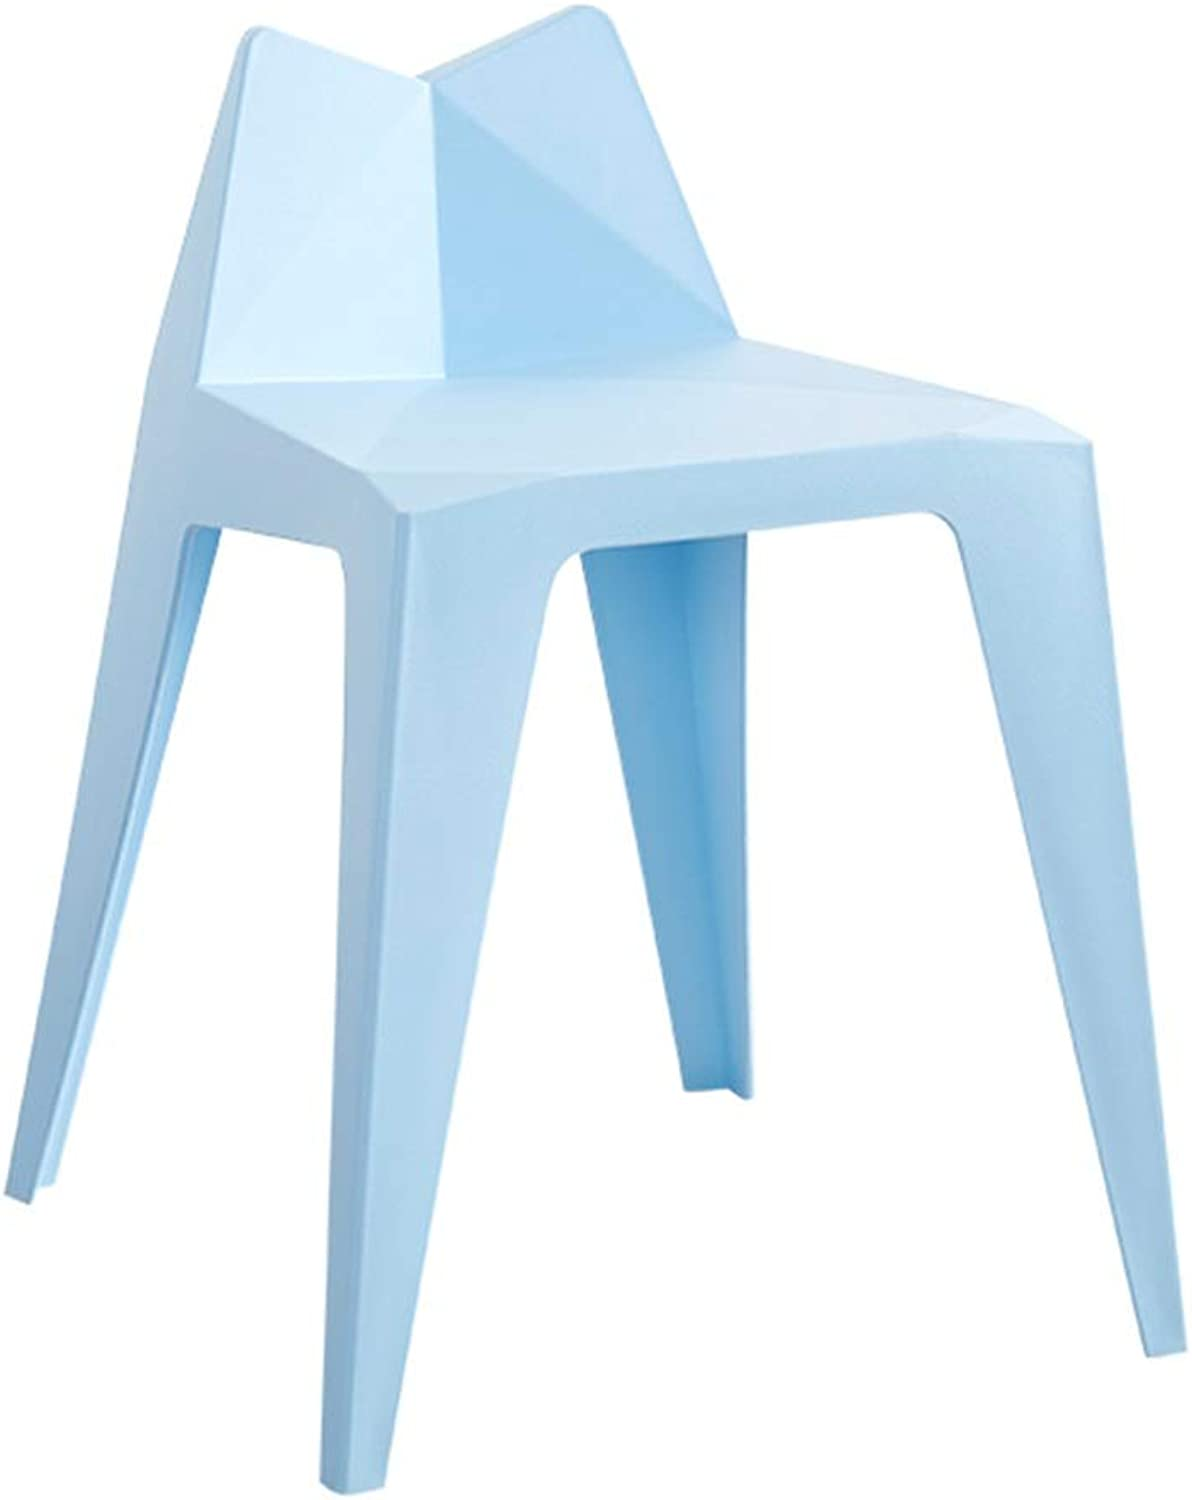 Plastic Stool, Living Room Bench Fashion Home Creative High Stool Thickening Adult Simple Restaurant Stool (color   bluee)